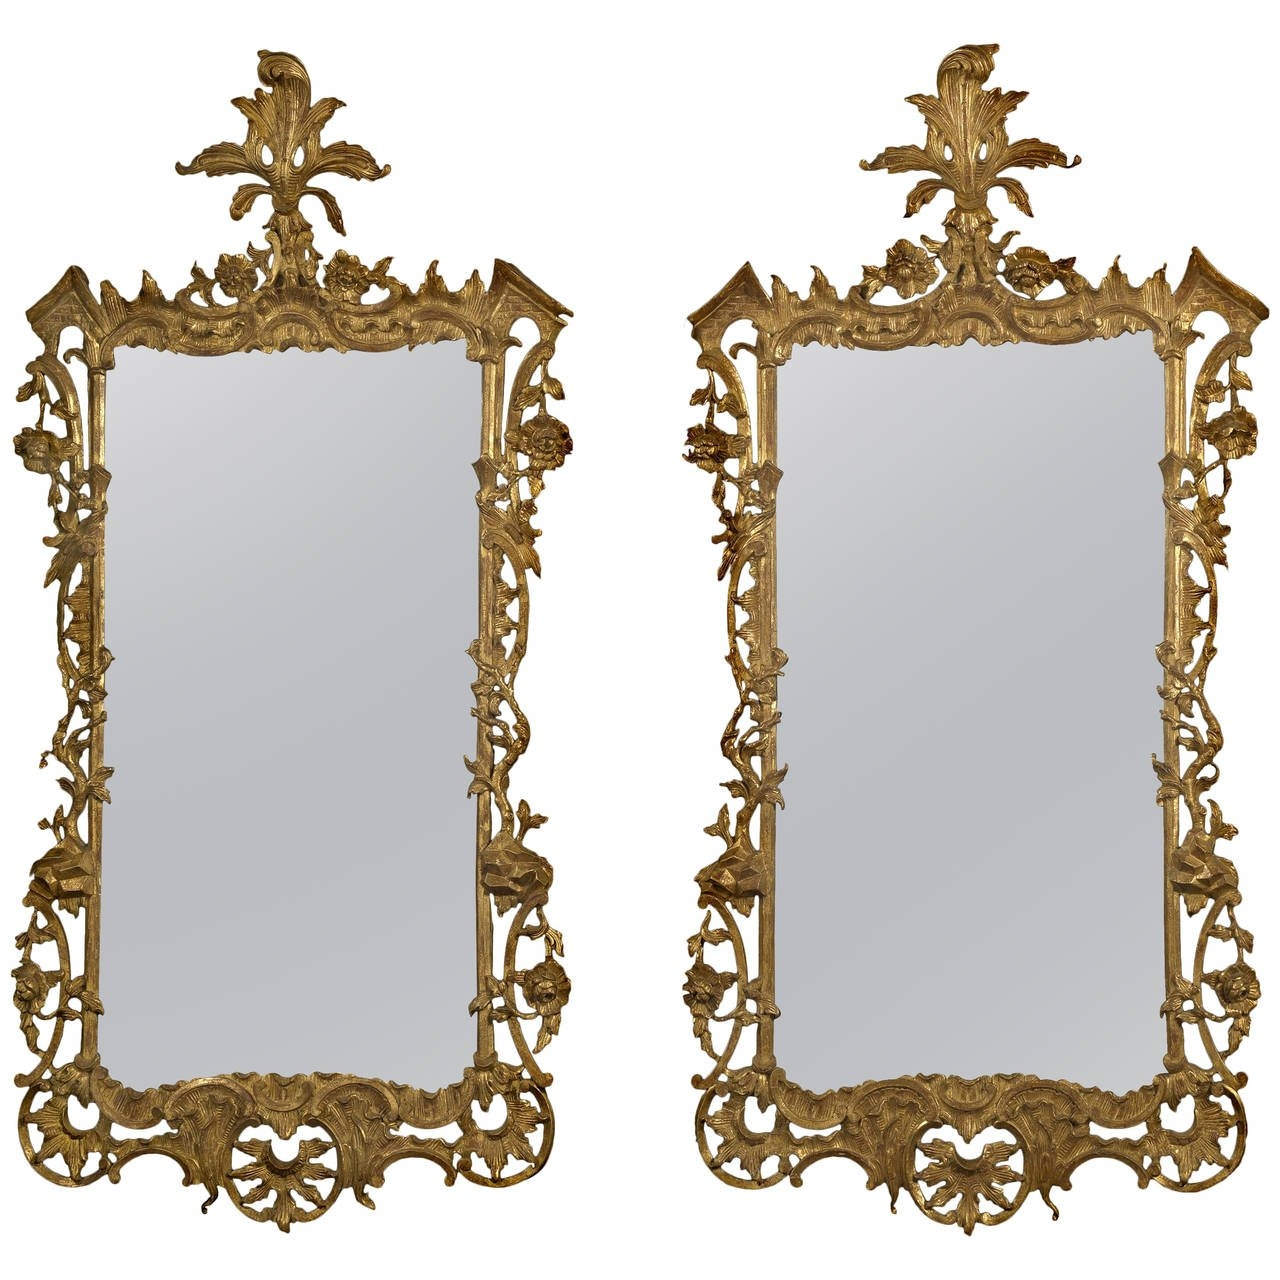 Pair Of Carved Giltwood Mirrors In The Rococo Style For Sale At Throughout Rococo Style Mirrors (Image 11 of 15)